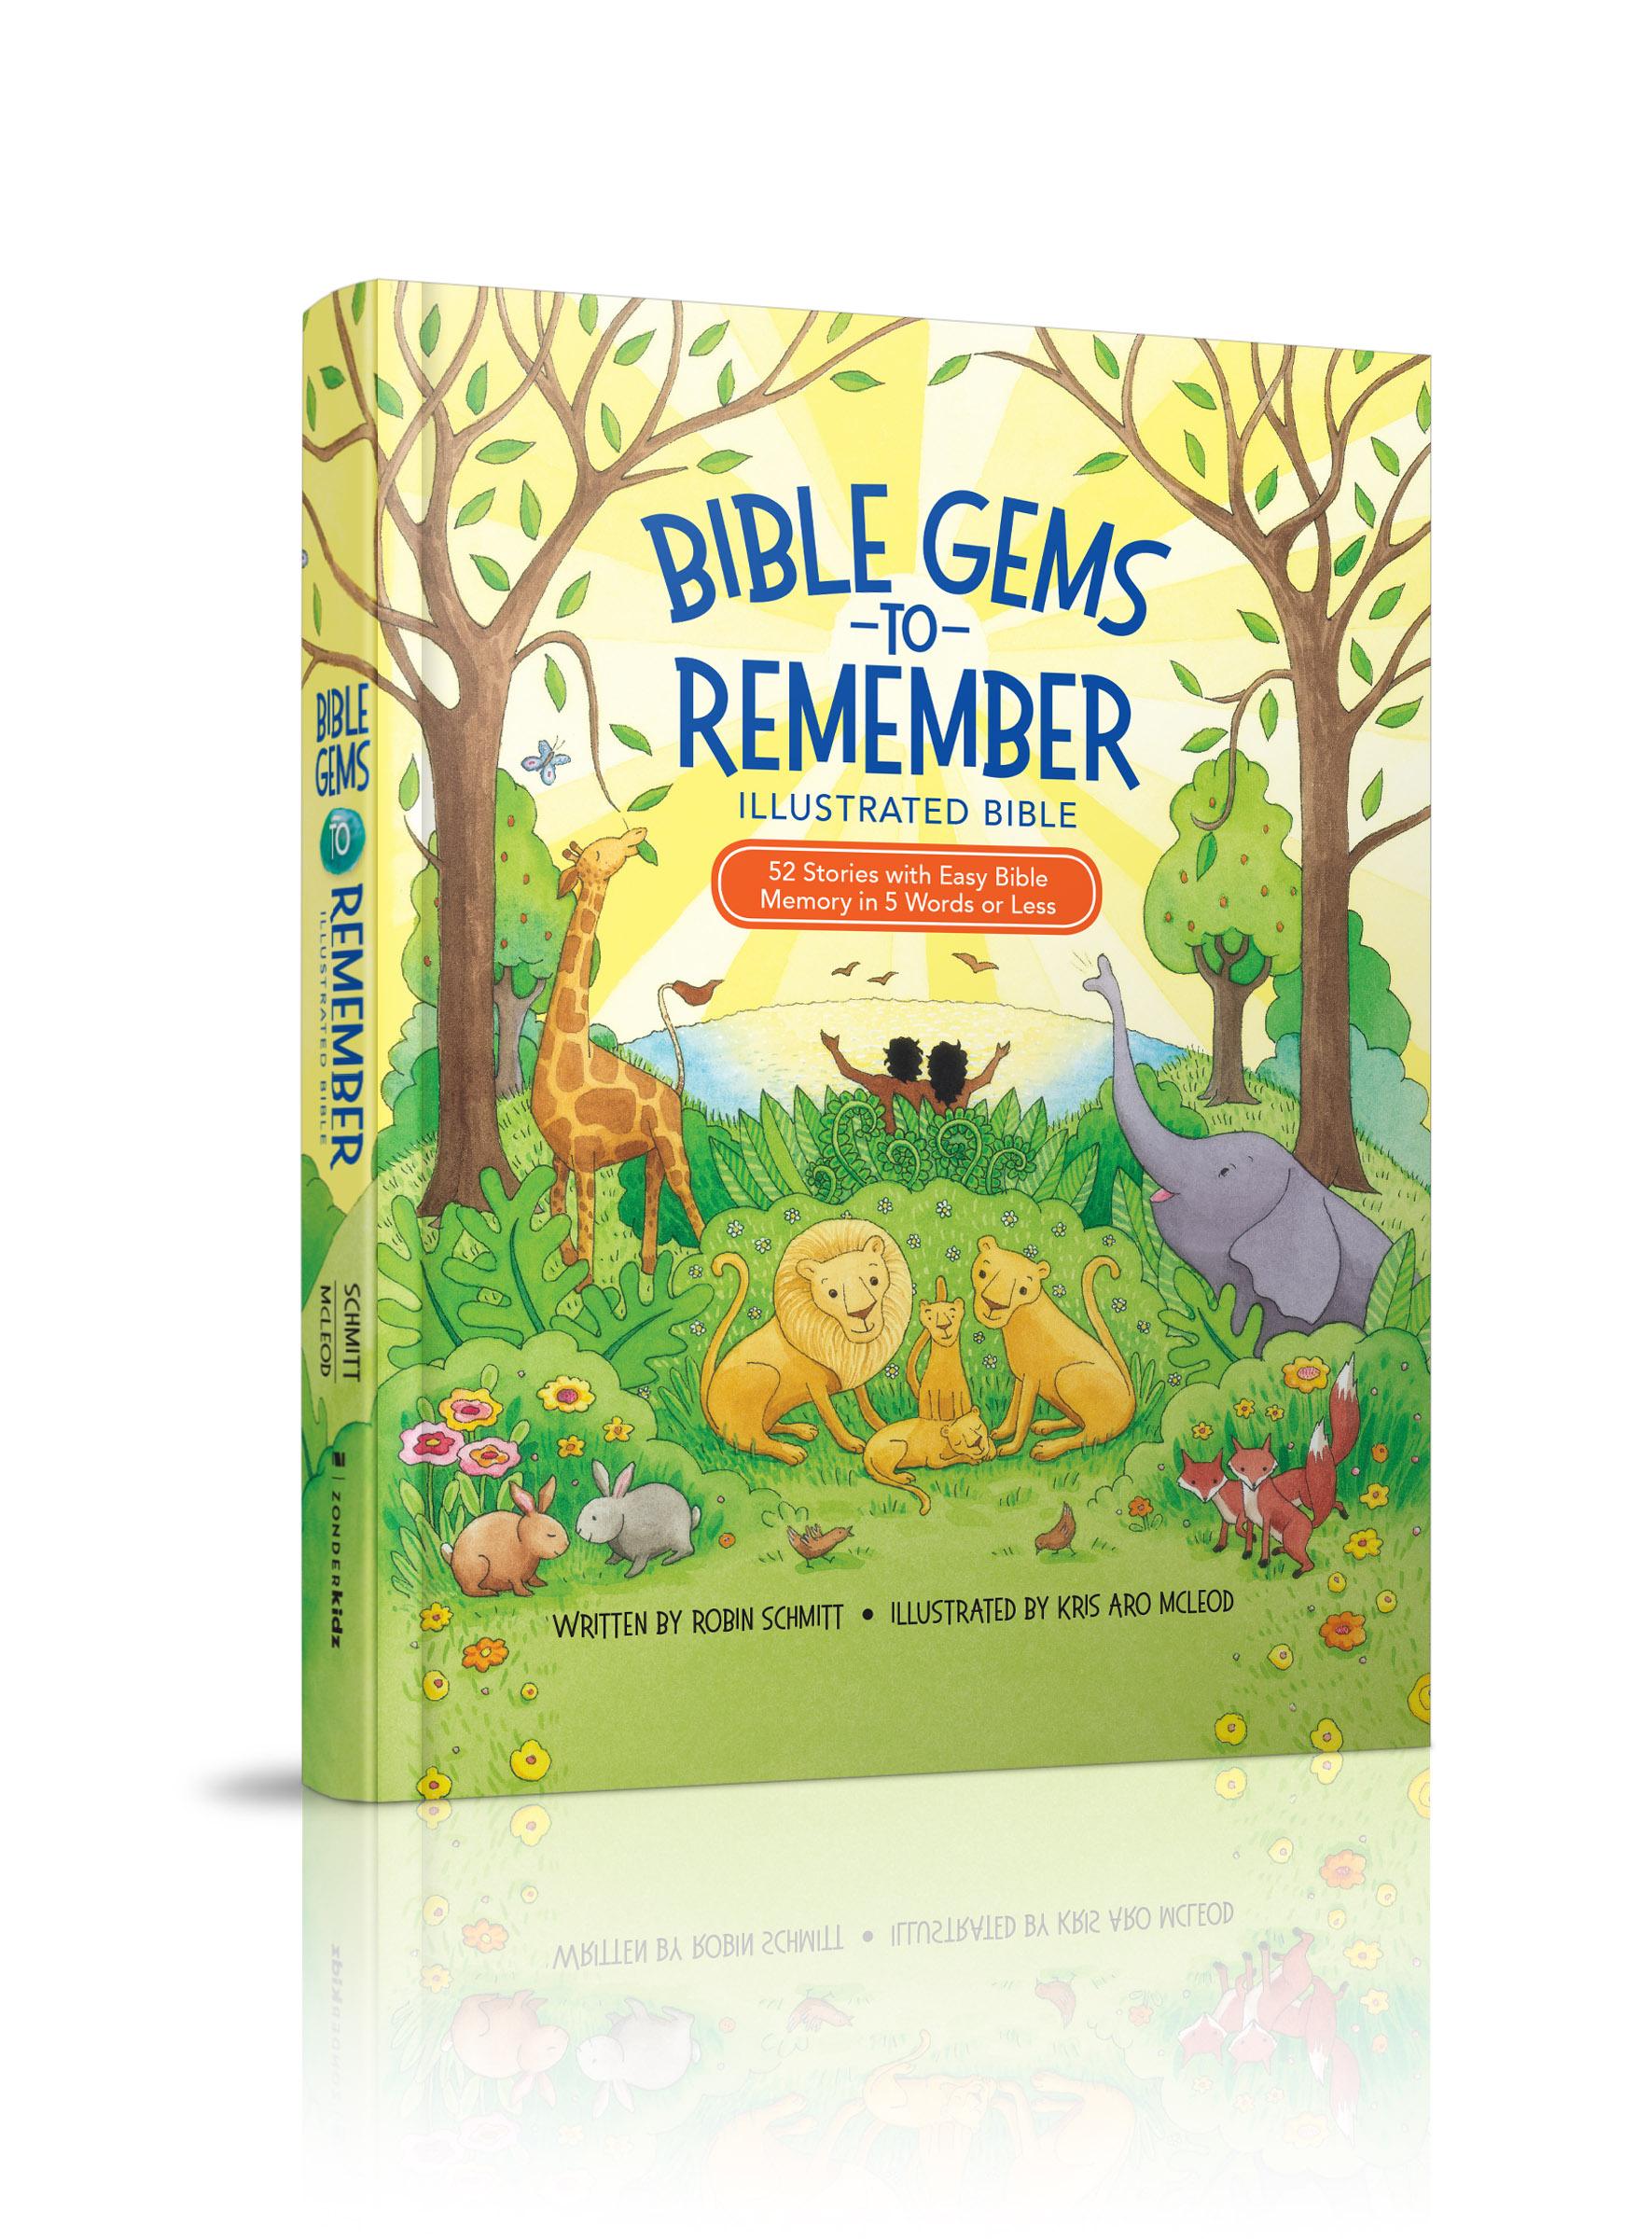 Buy your copy of Bible Gems to Remember Illustrated Bible in the Bible Gateway Store where you'll enjoy low prices every day